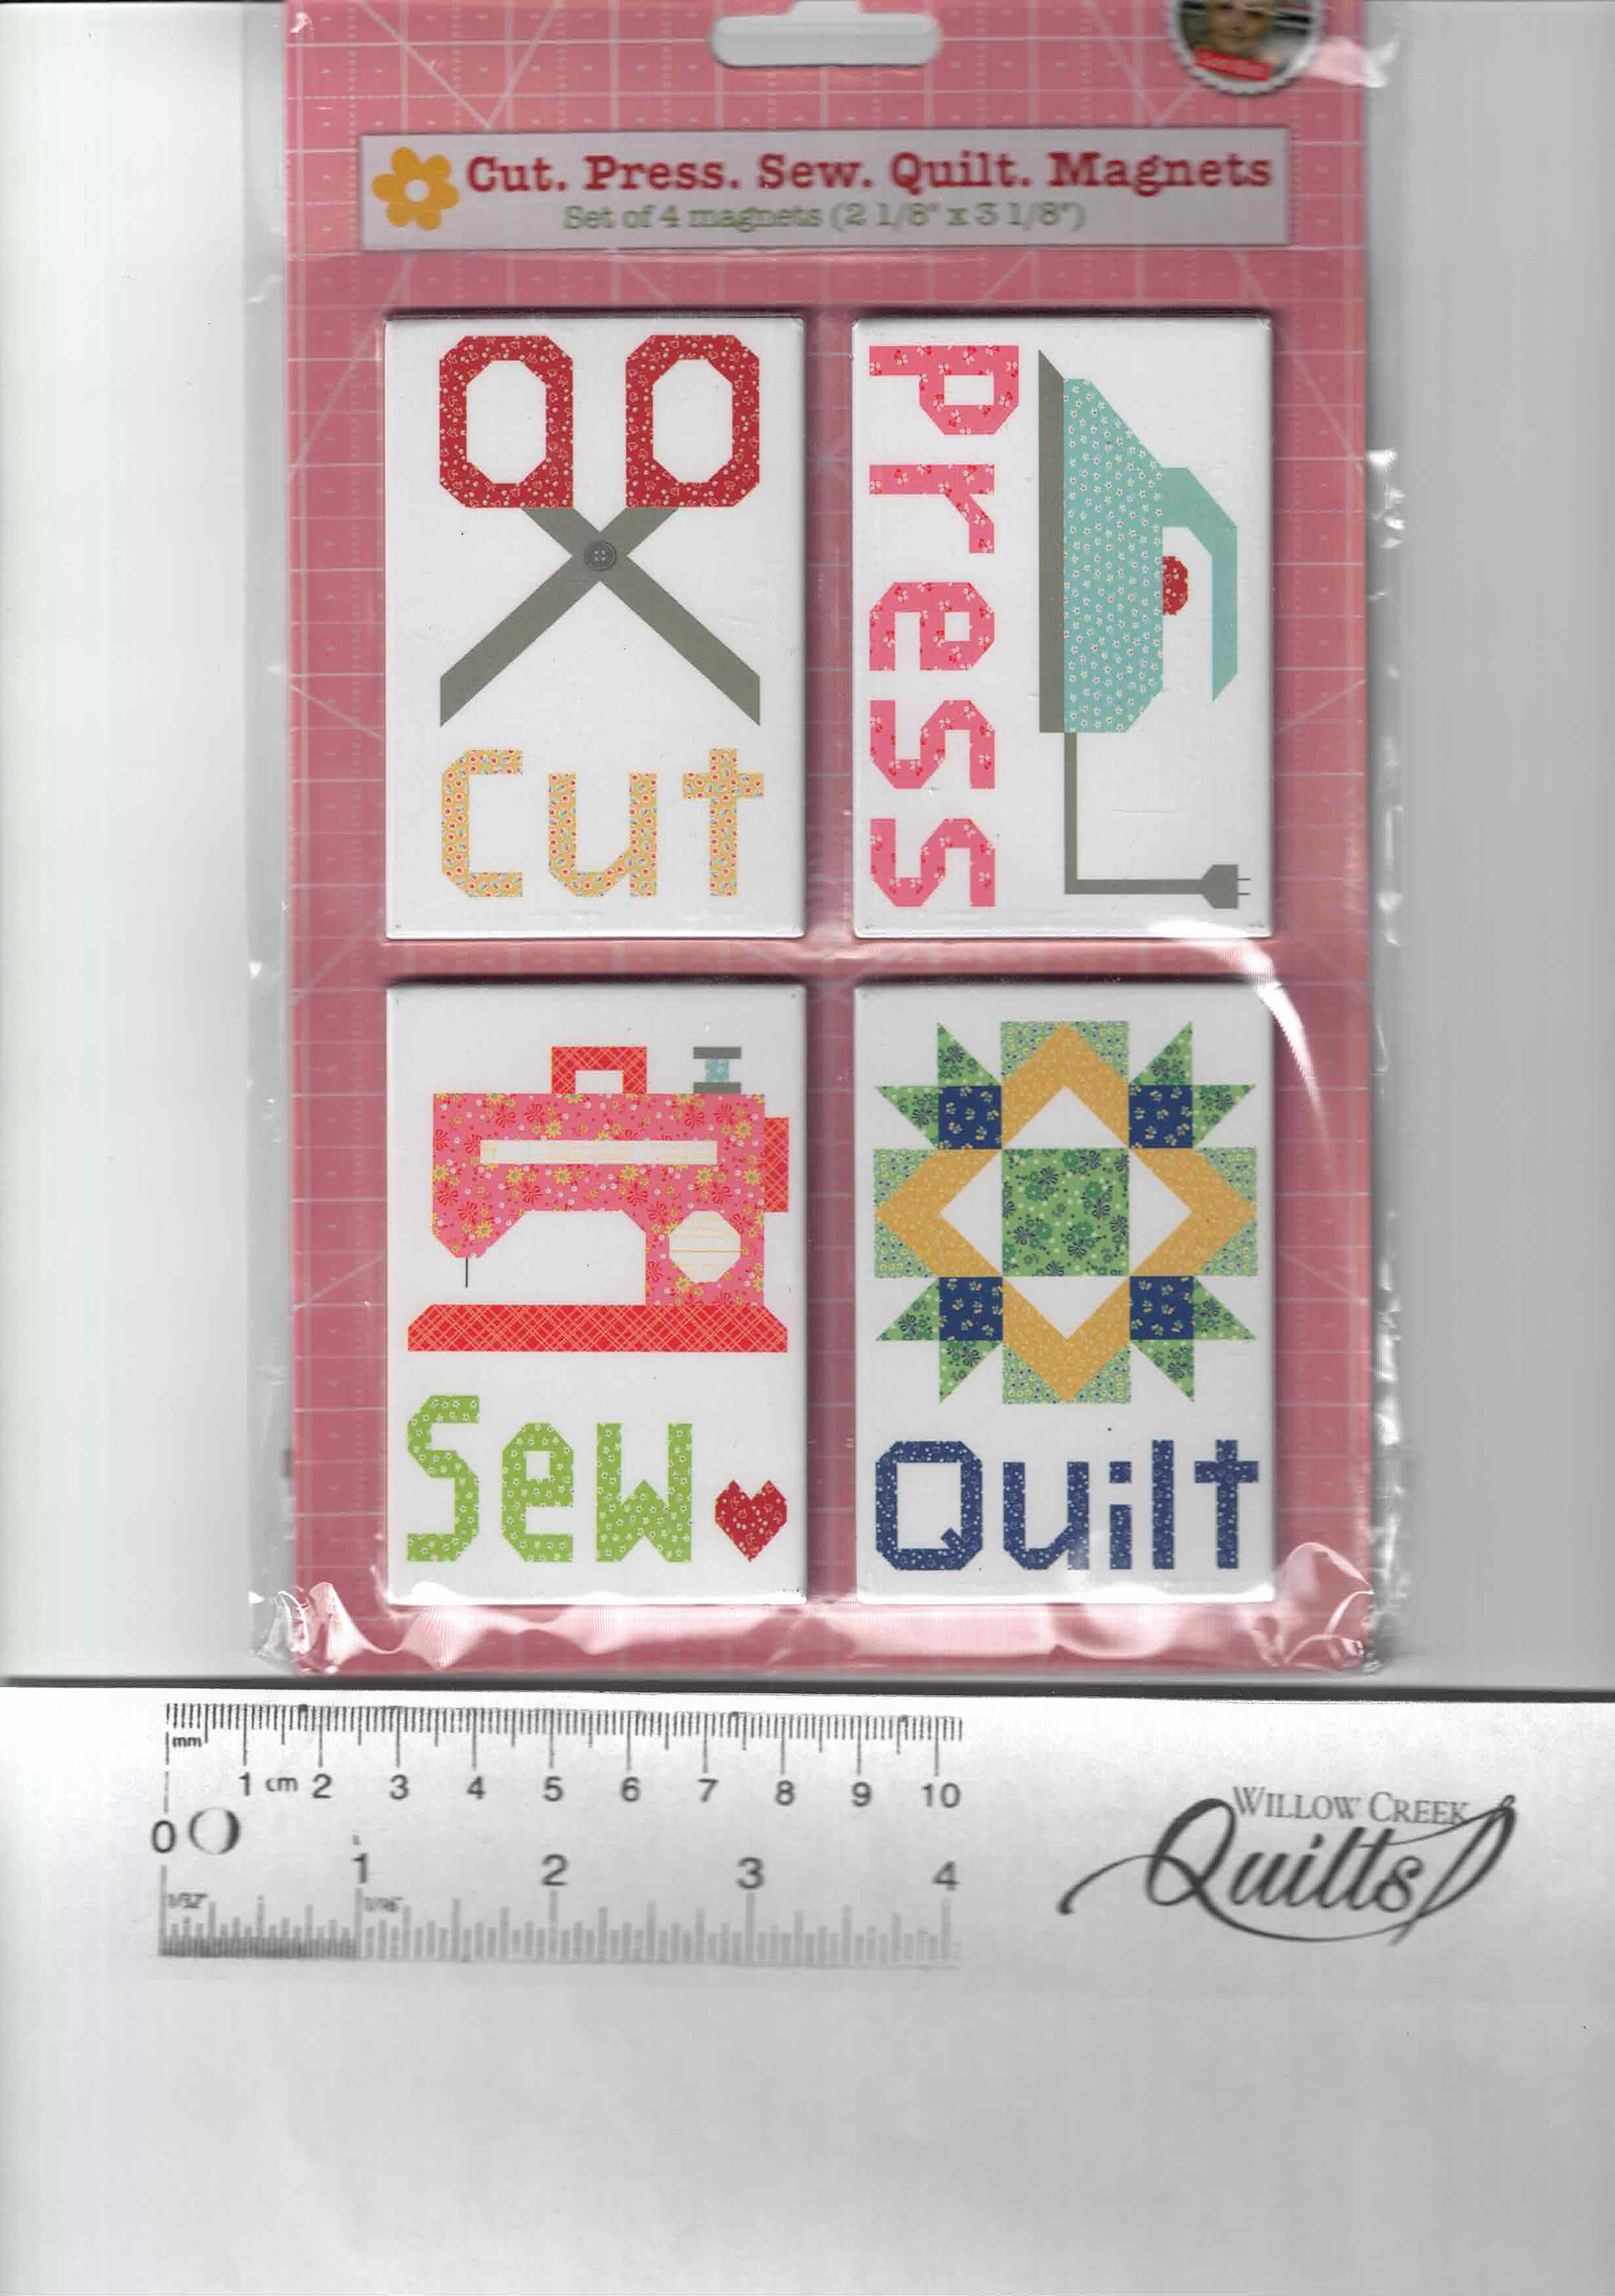 Magnets - Cut Press Sew Quilt - set of 4